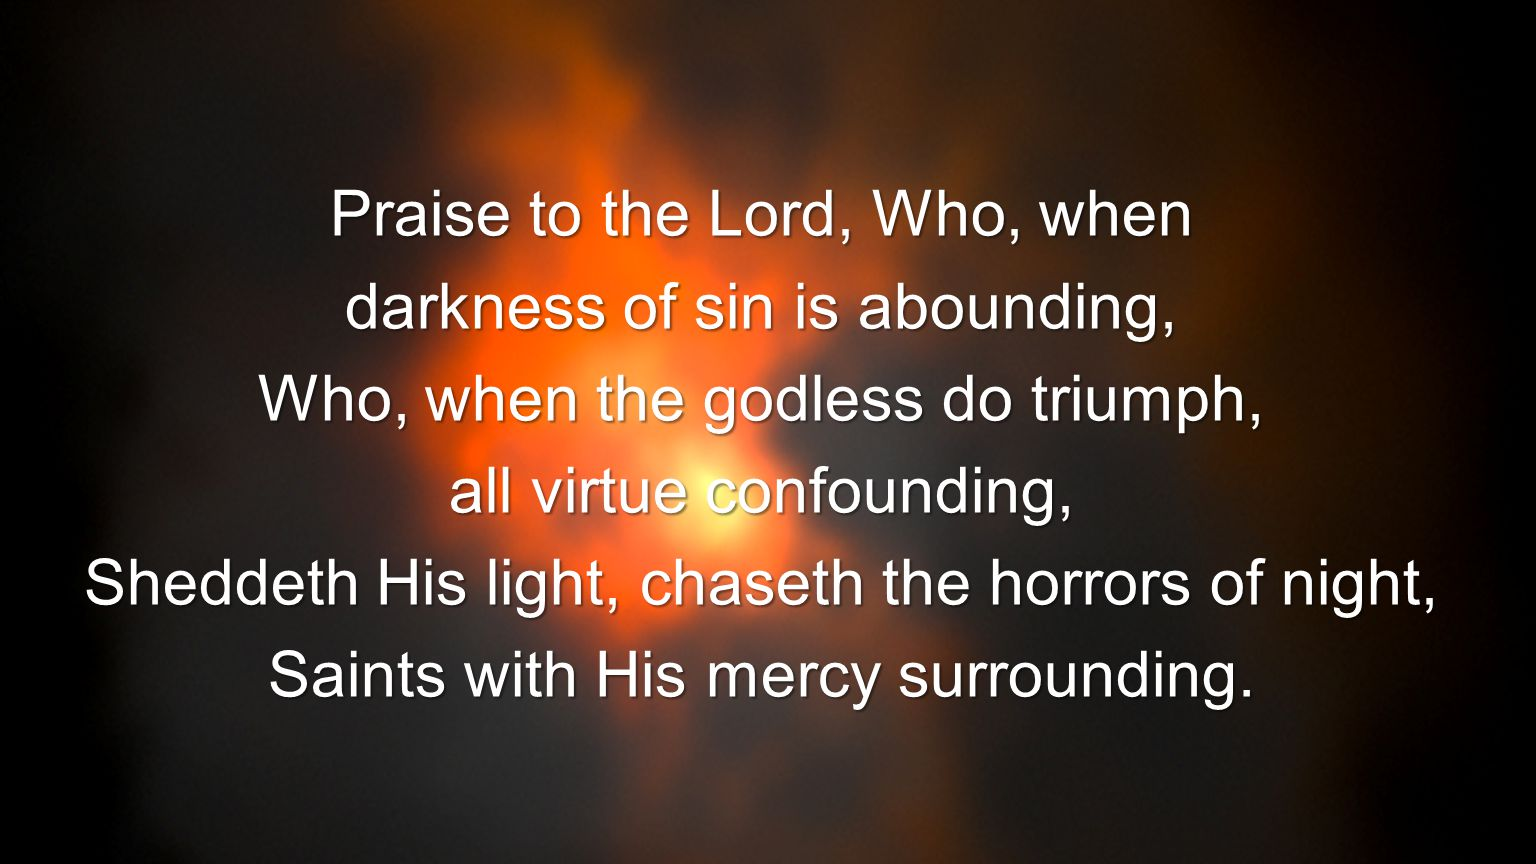 Praise to the Lord, Who, when darkness of sin is abounding, Who, when the godless do triumph, all virtue confounding, Sheddeth His light, chaseth the